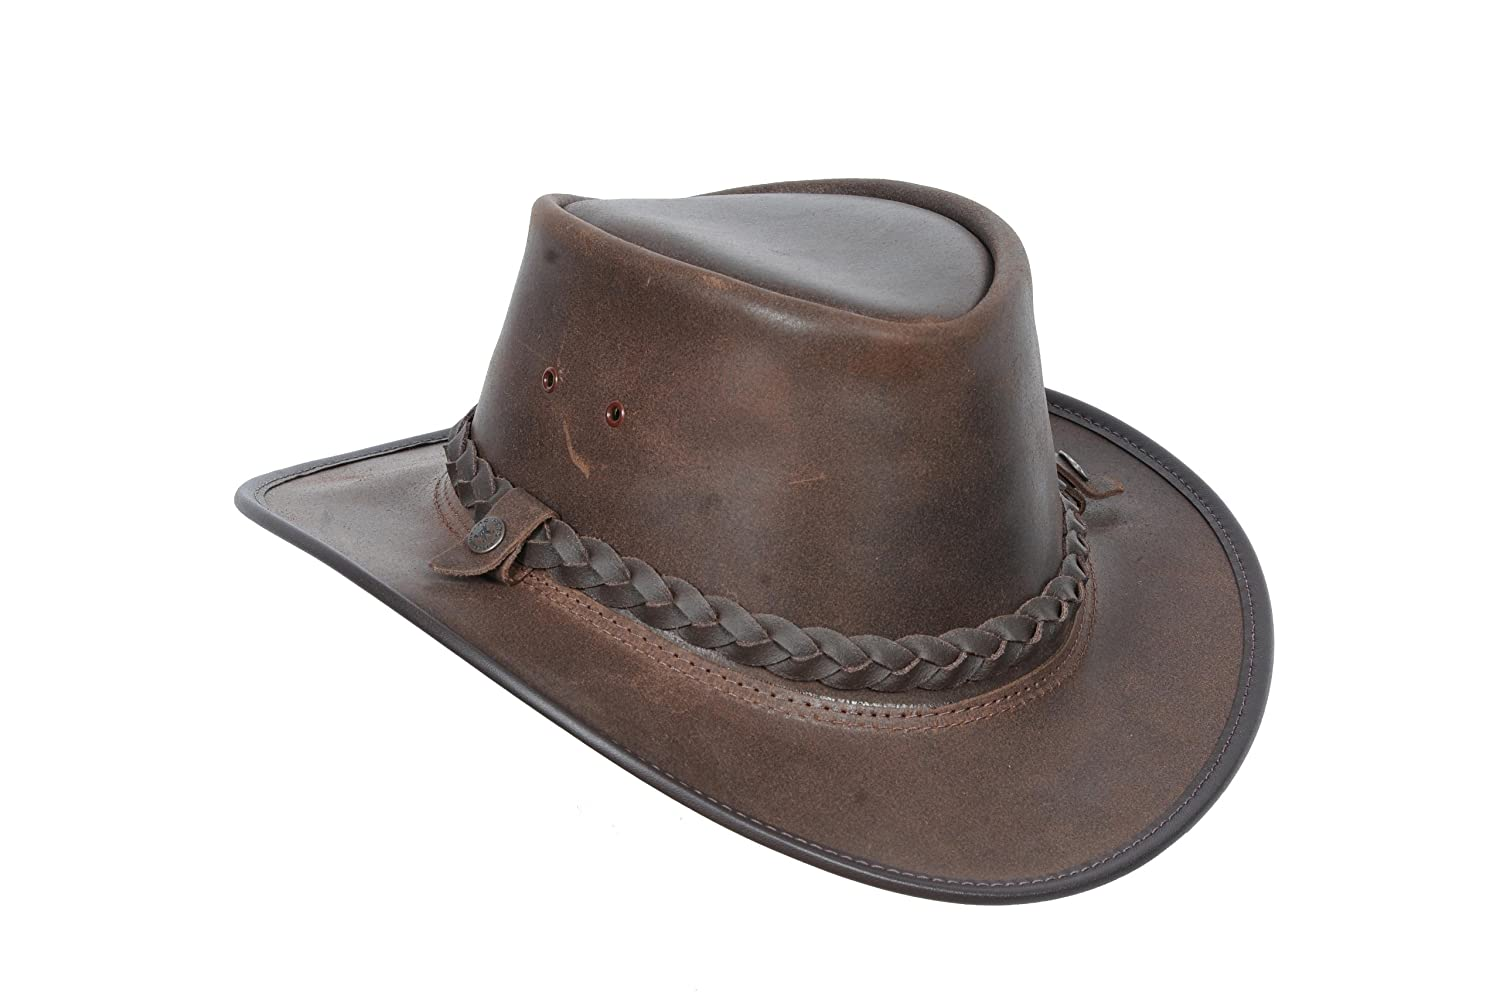 Original Australian Bush Leather Hat Brown Real Leather Cowboy Style Leather Hat